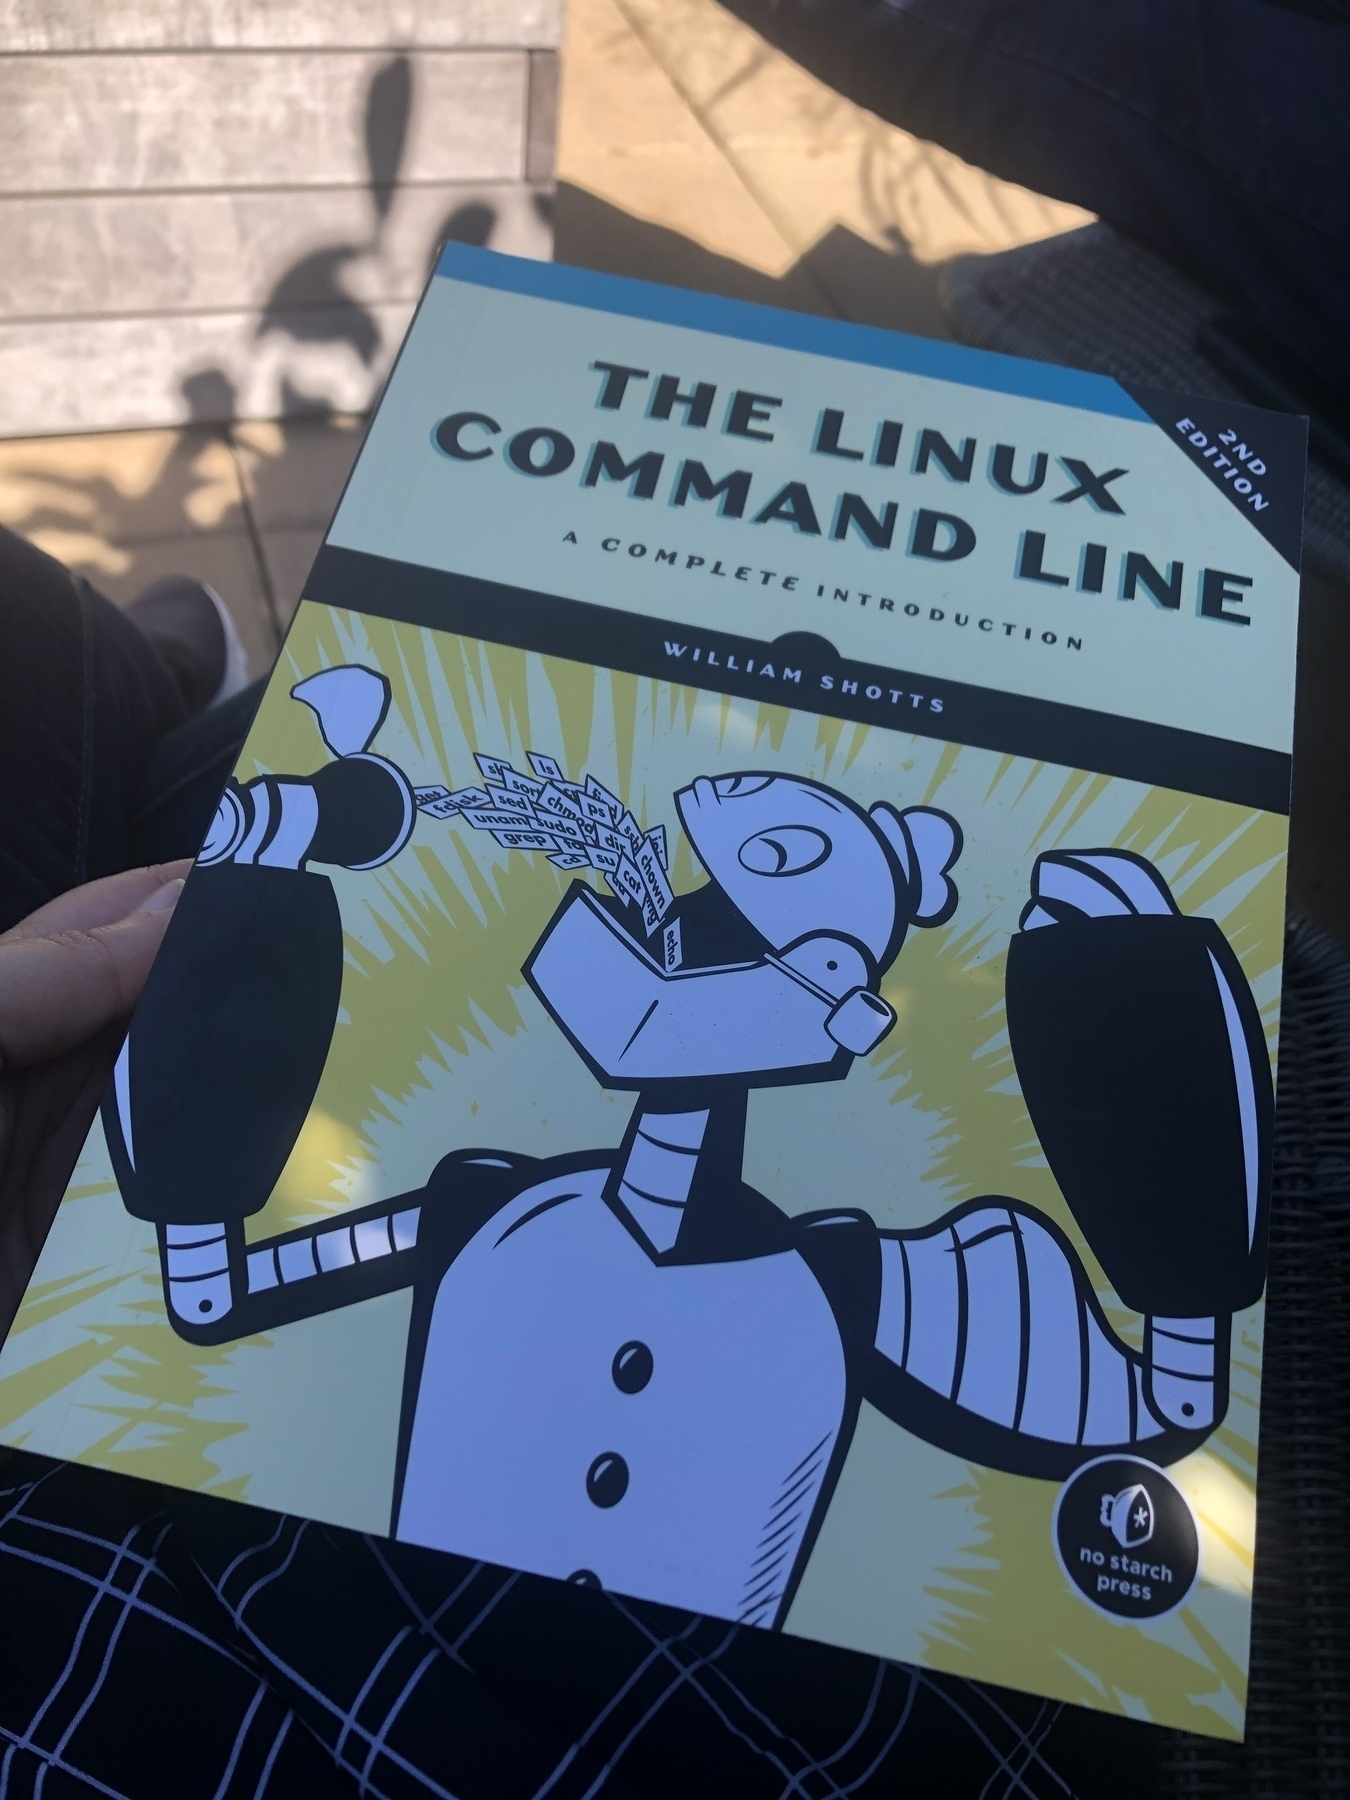 Book cover: An illustration of a robot eating papers with linux commands written on them.